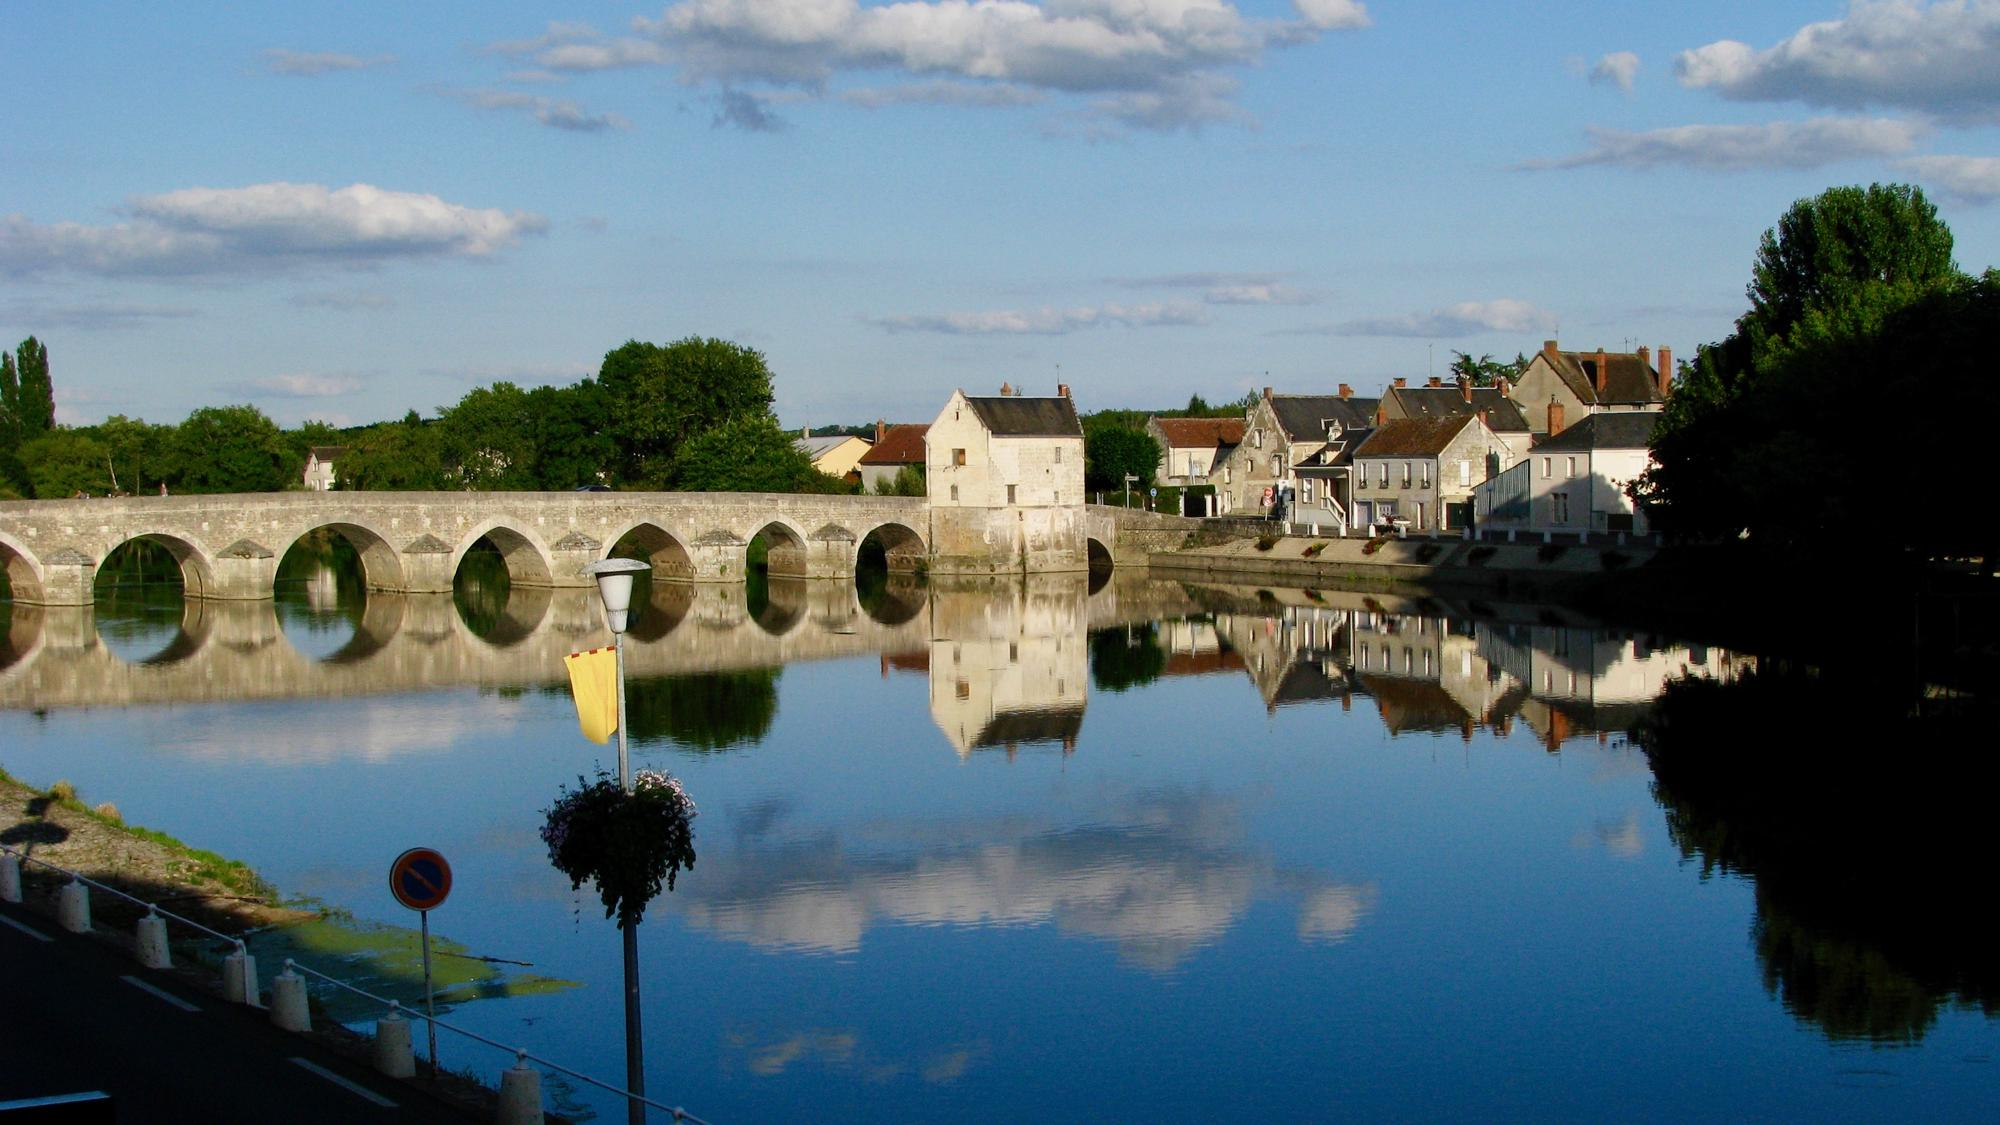 Campsites in Cher | Best Camping in Cher, France